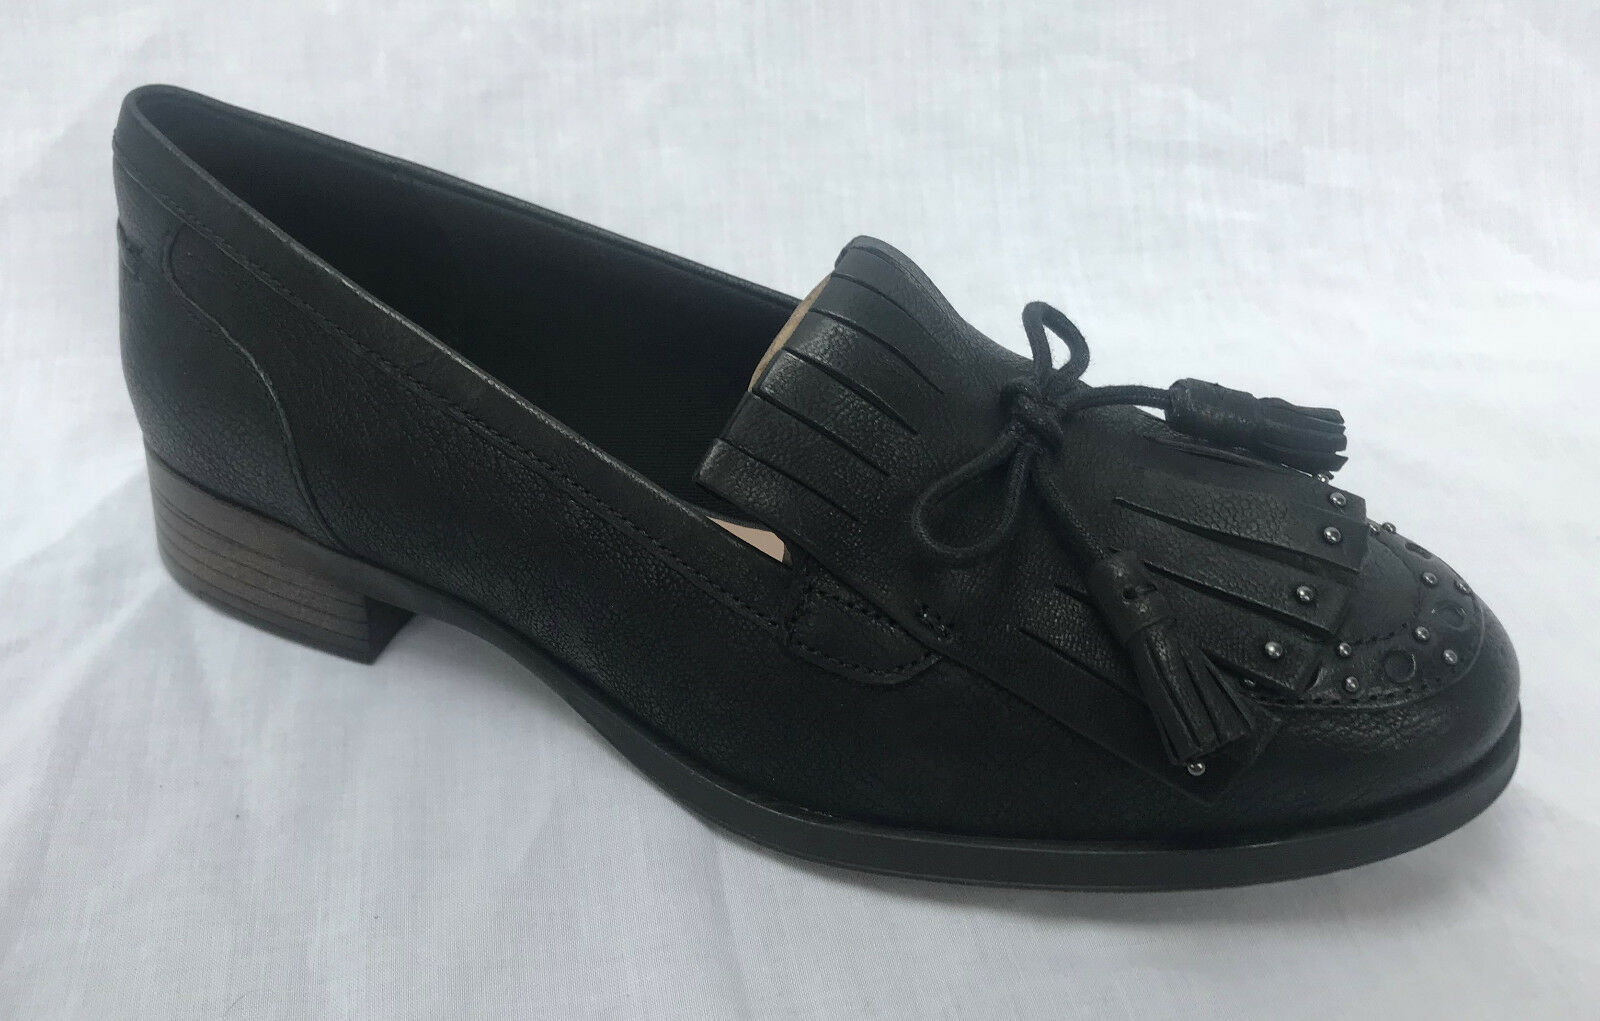 Clarks Womens Casual Clarks Busby Lola Leather Shoes in Black 6 D ... 8dd6b81df7ba0